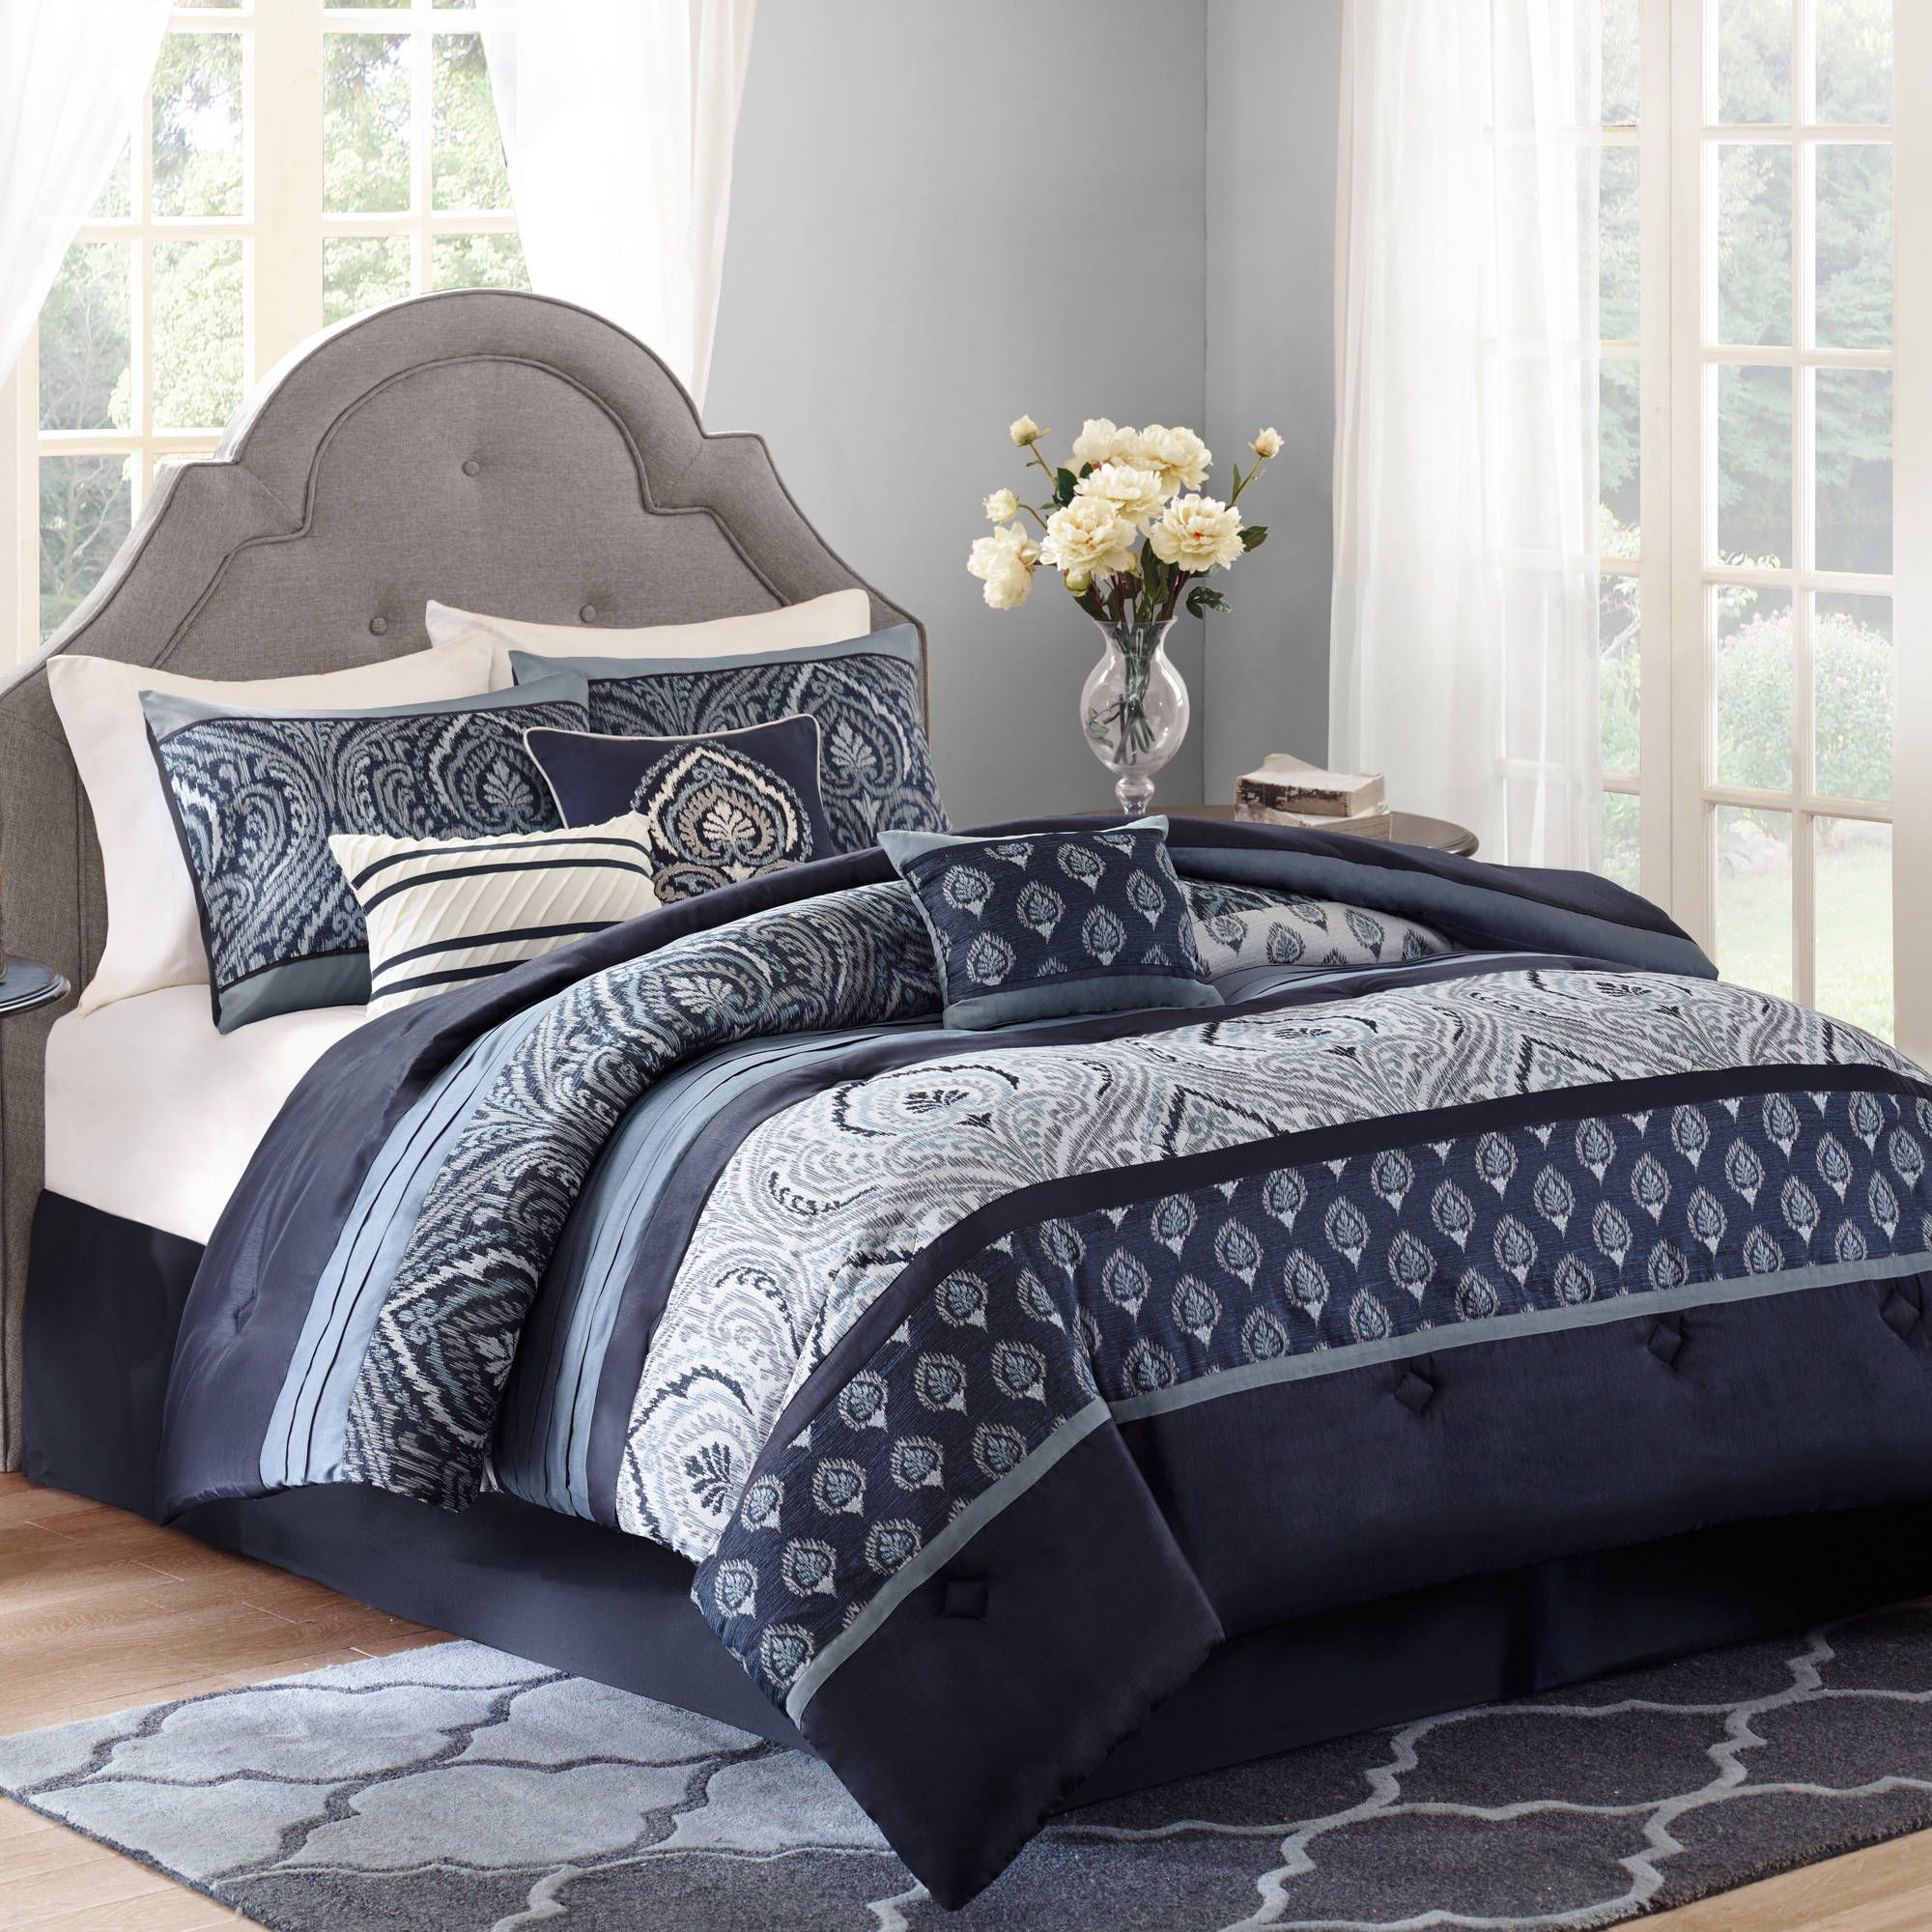 Better Homes and Gardens Indigo Paisley 7 Piece Bedding forter